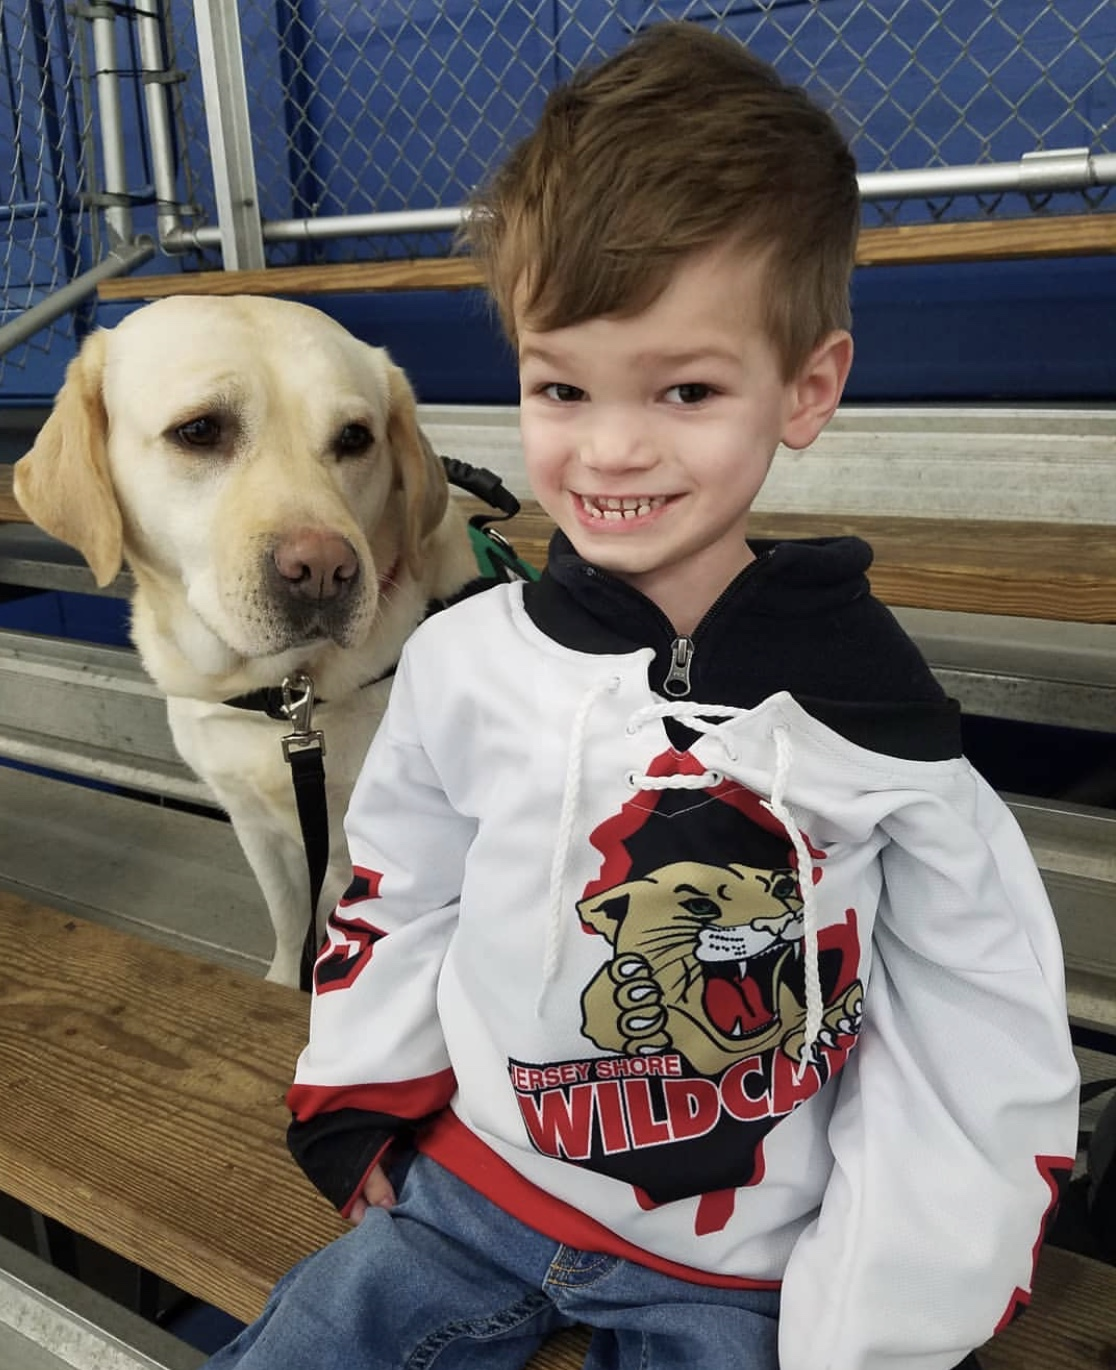 Harry enjoys a NJ Wildcats game with Queenie by his side!